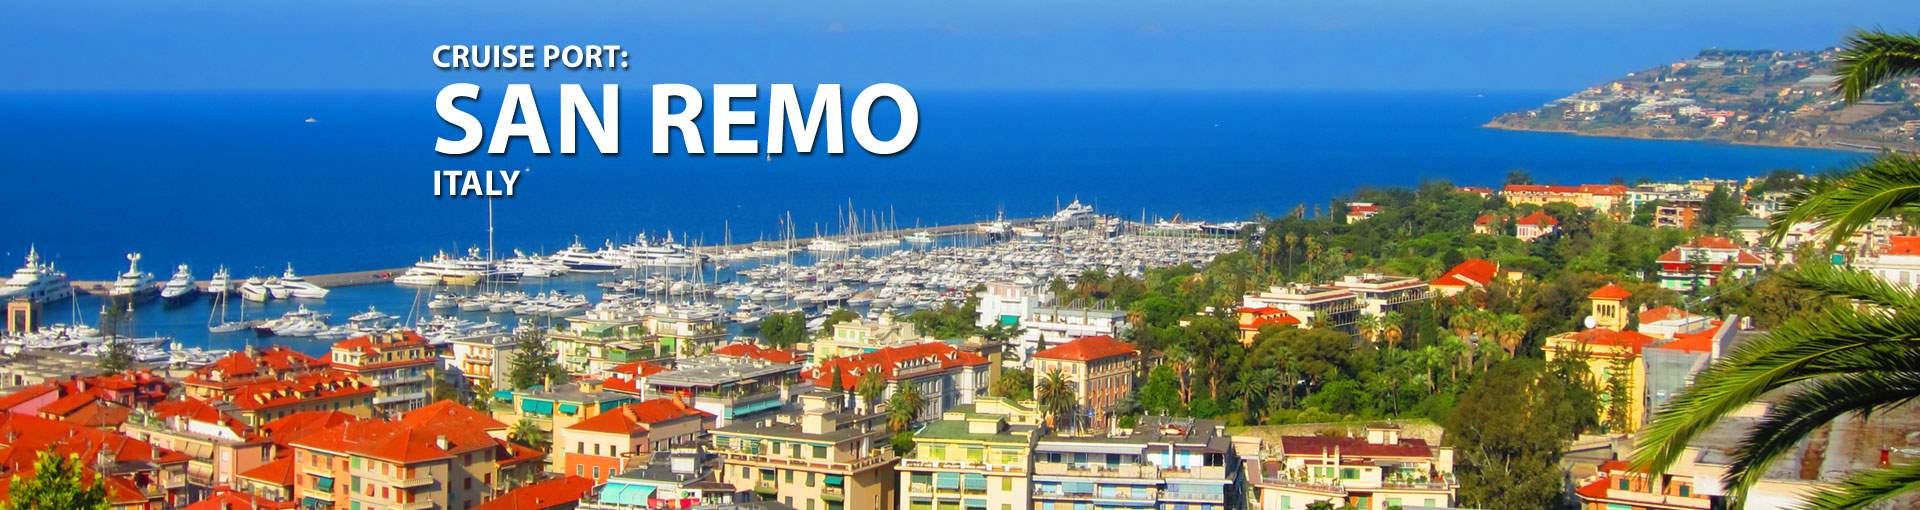 San Remo Italy Cruise Port 2018 And 2019 Cruises To San